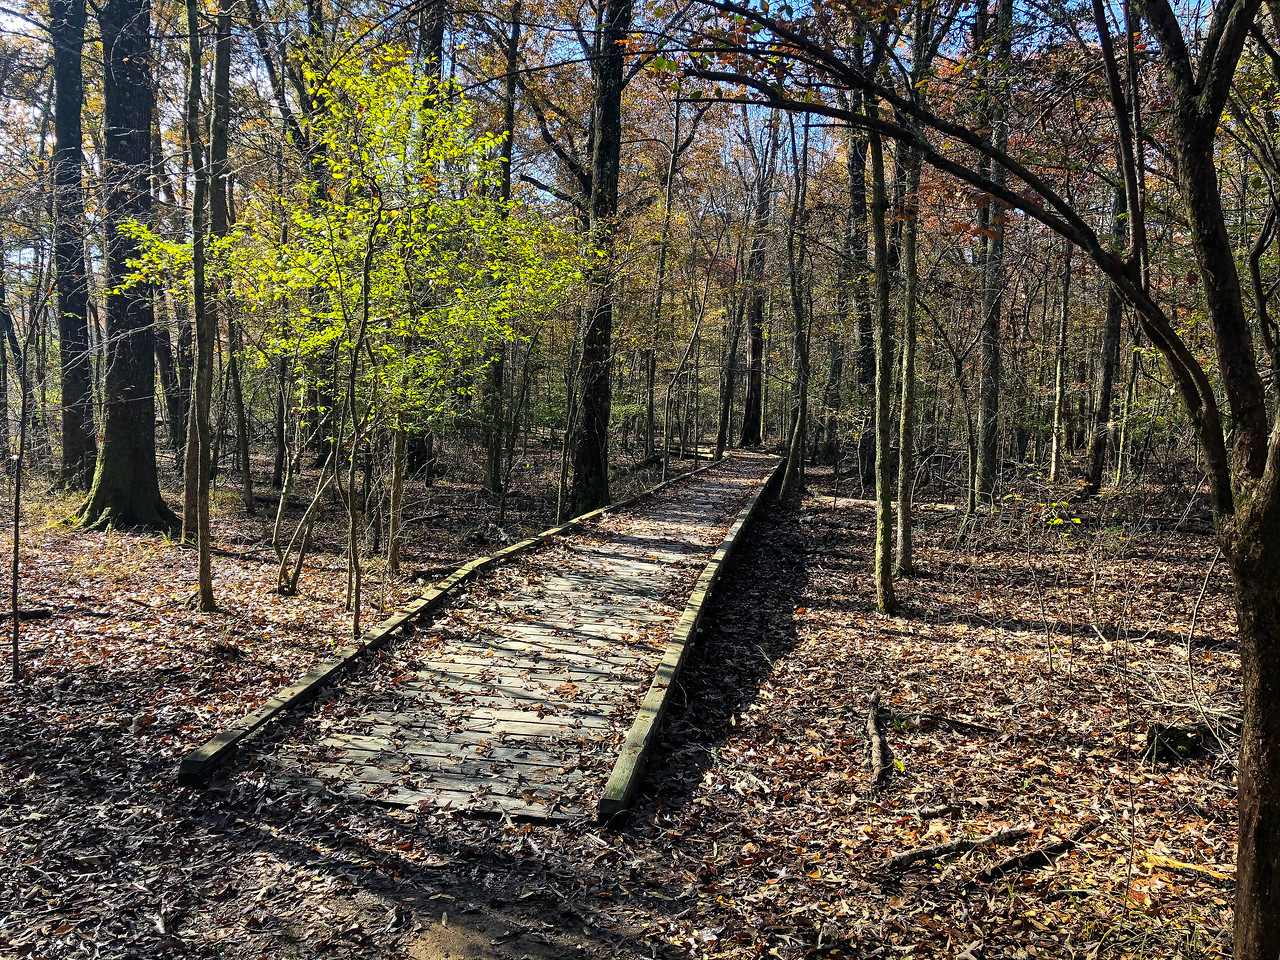 A boardwalk over a wet area in the woods.